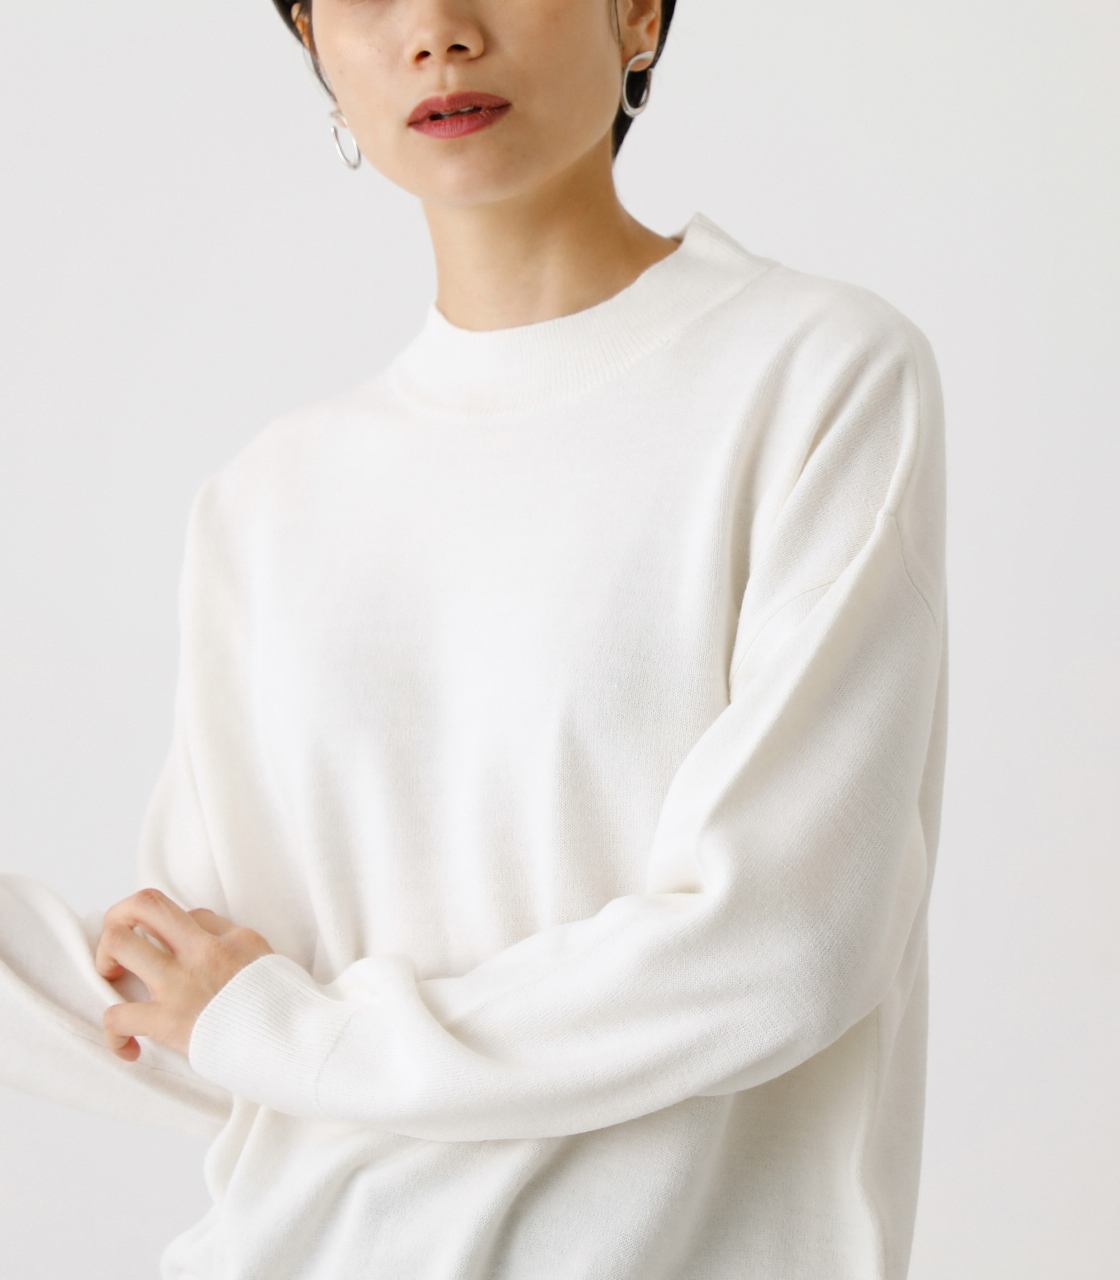 NUDIE H/N KNIT TOPS/ヌーディーハイネックニットトップス【MOOK53掲載 90022】 詳細画像 O/WHT 4